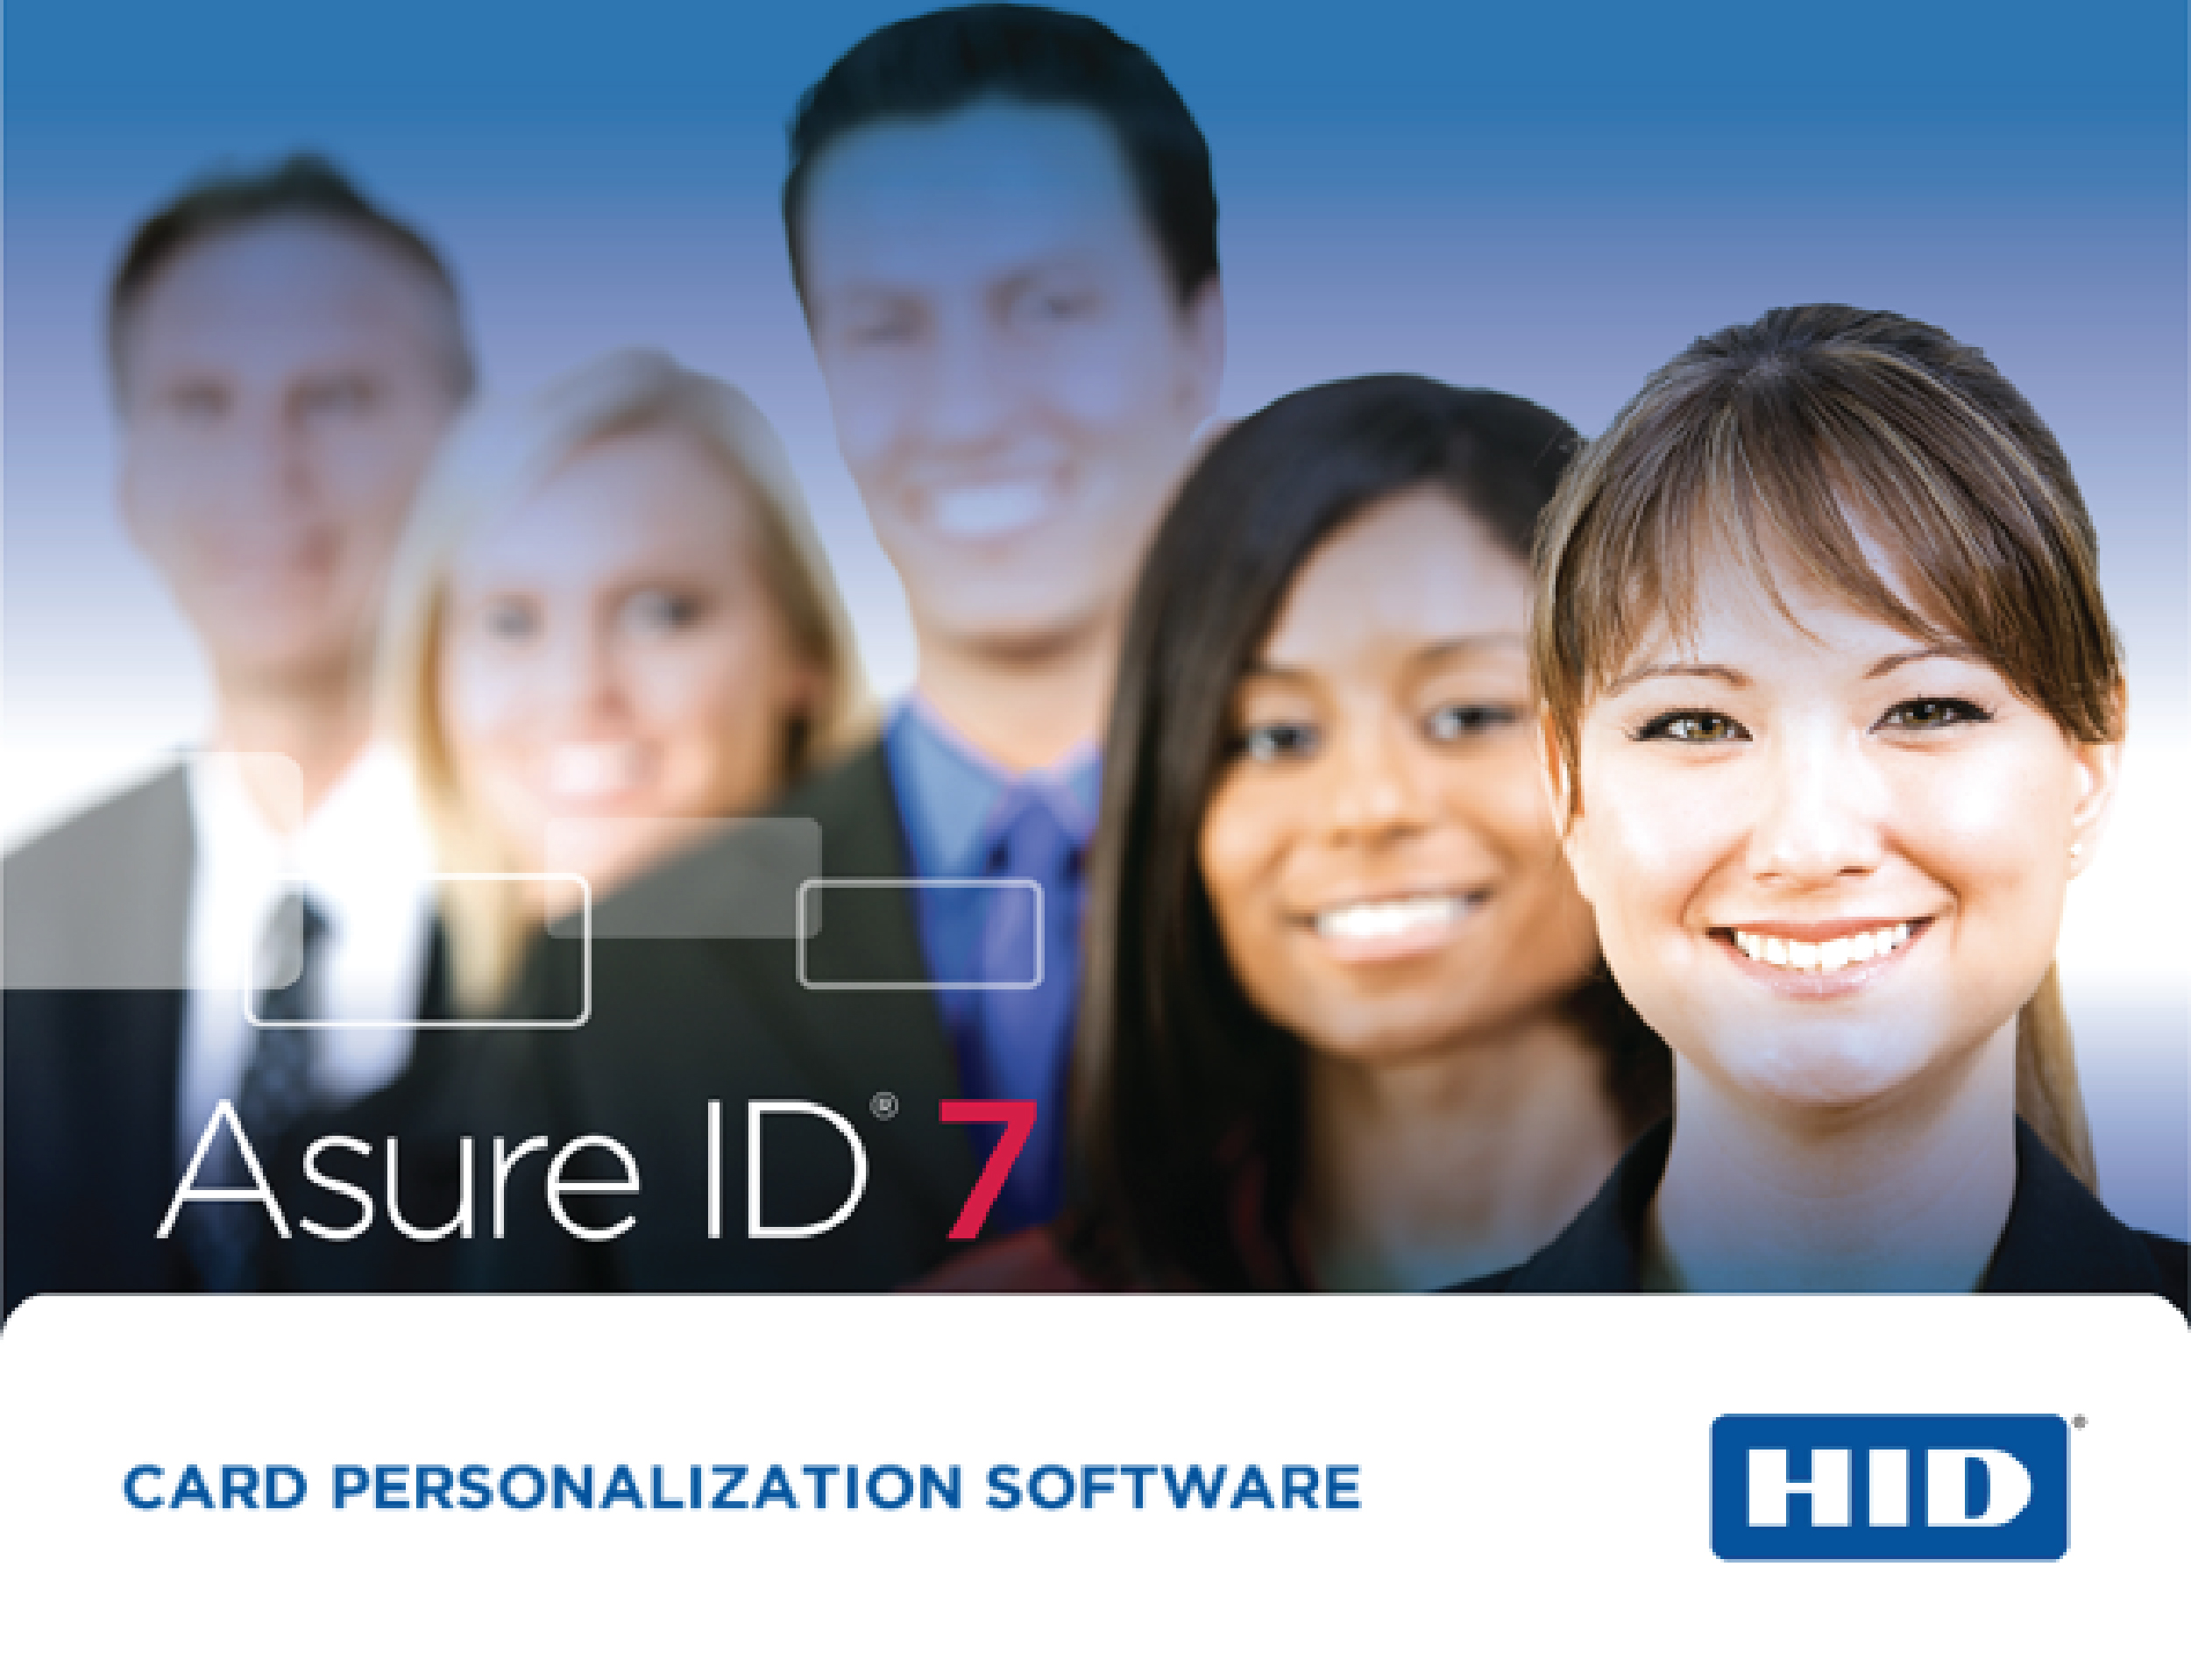 asure id templates - asure id card design software